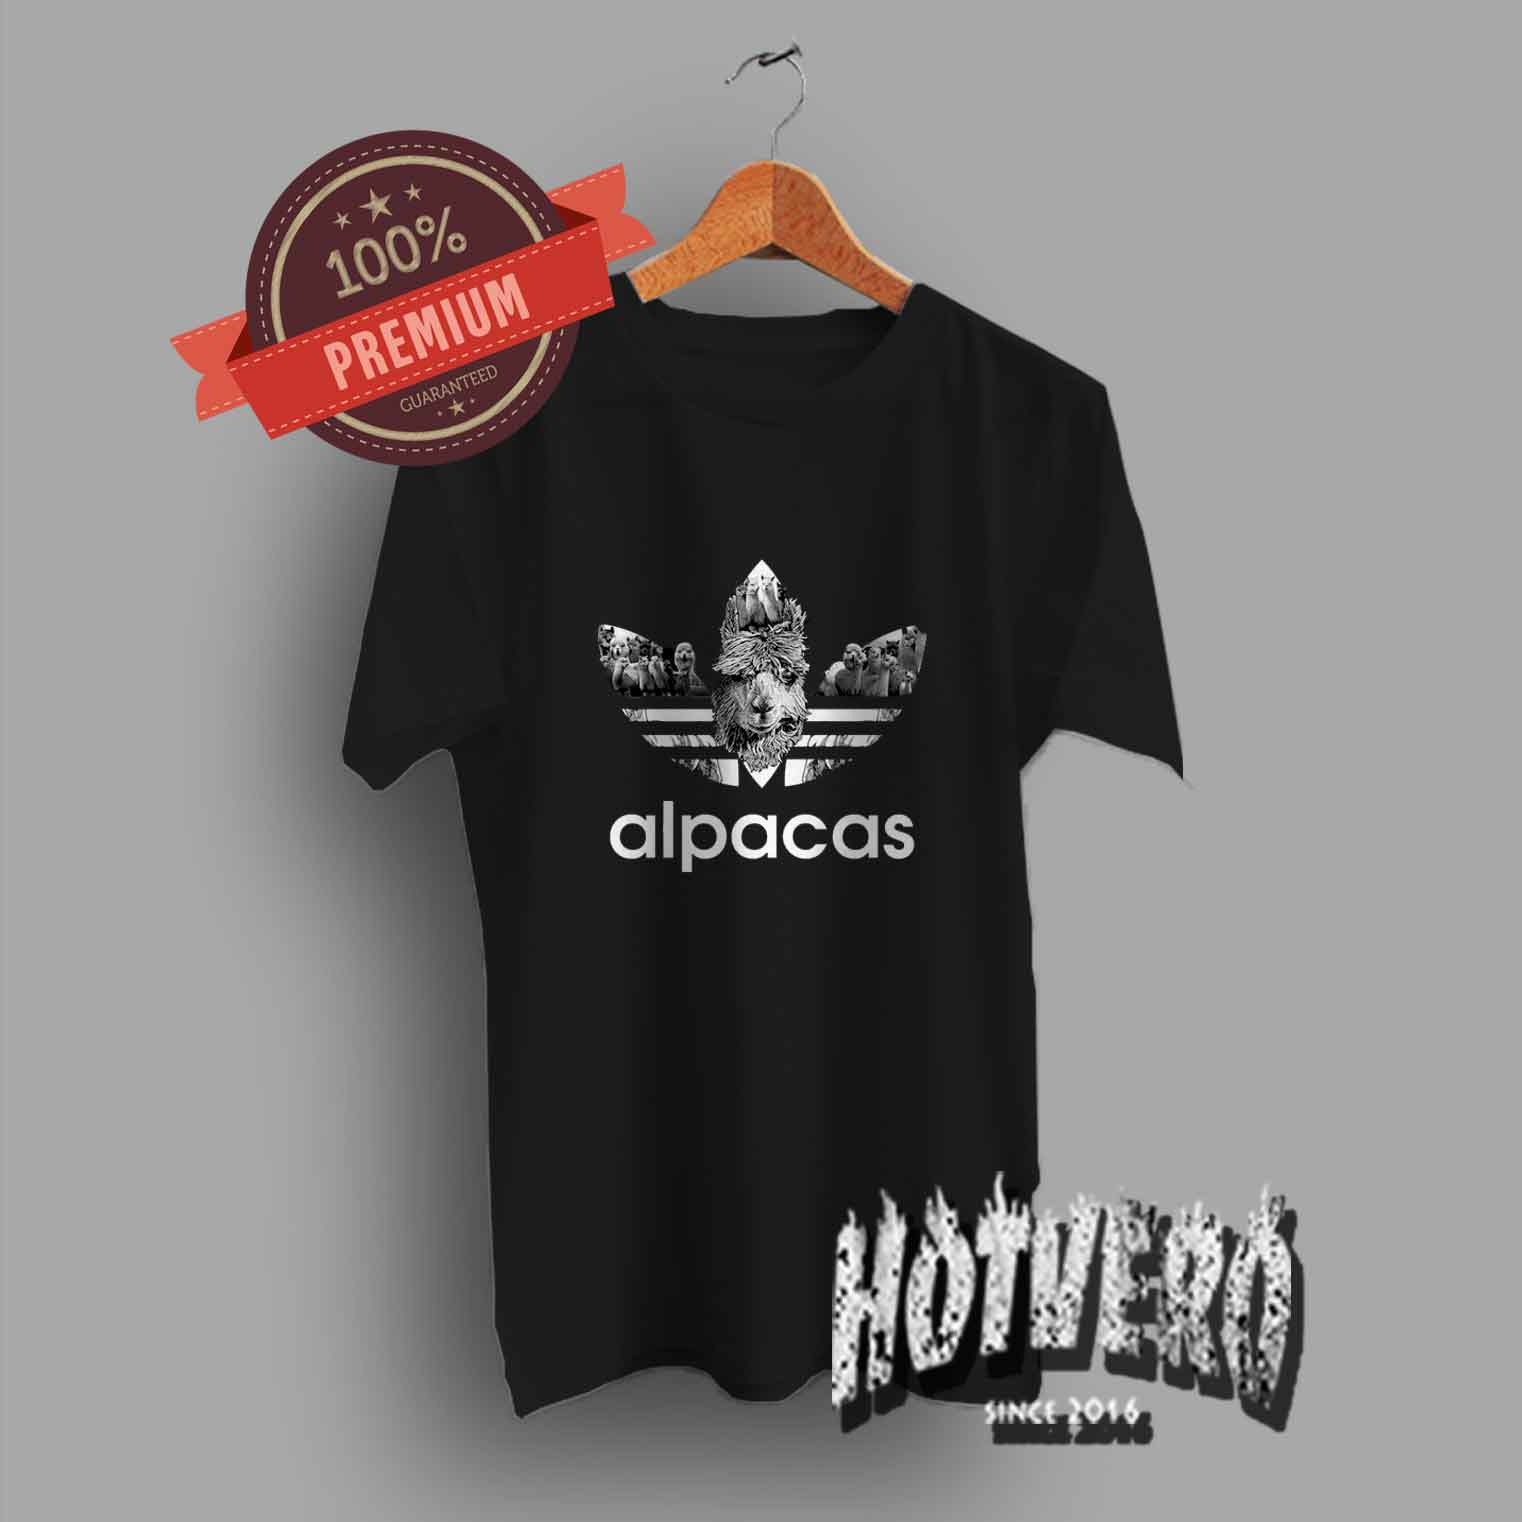 Cute Alpacas Adidas Inspired T Shirts